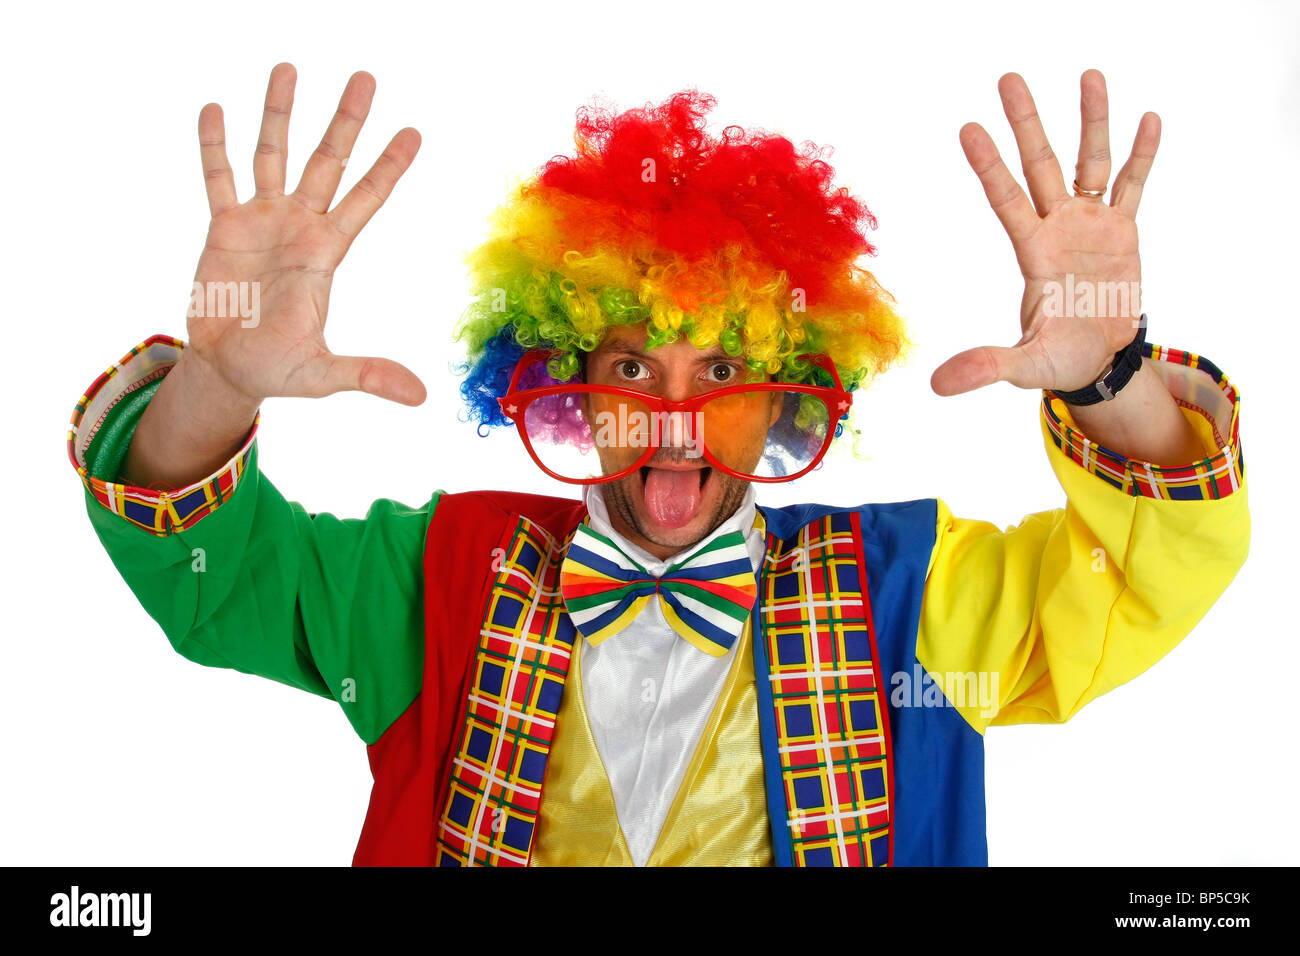 Silly Clown Pictures